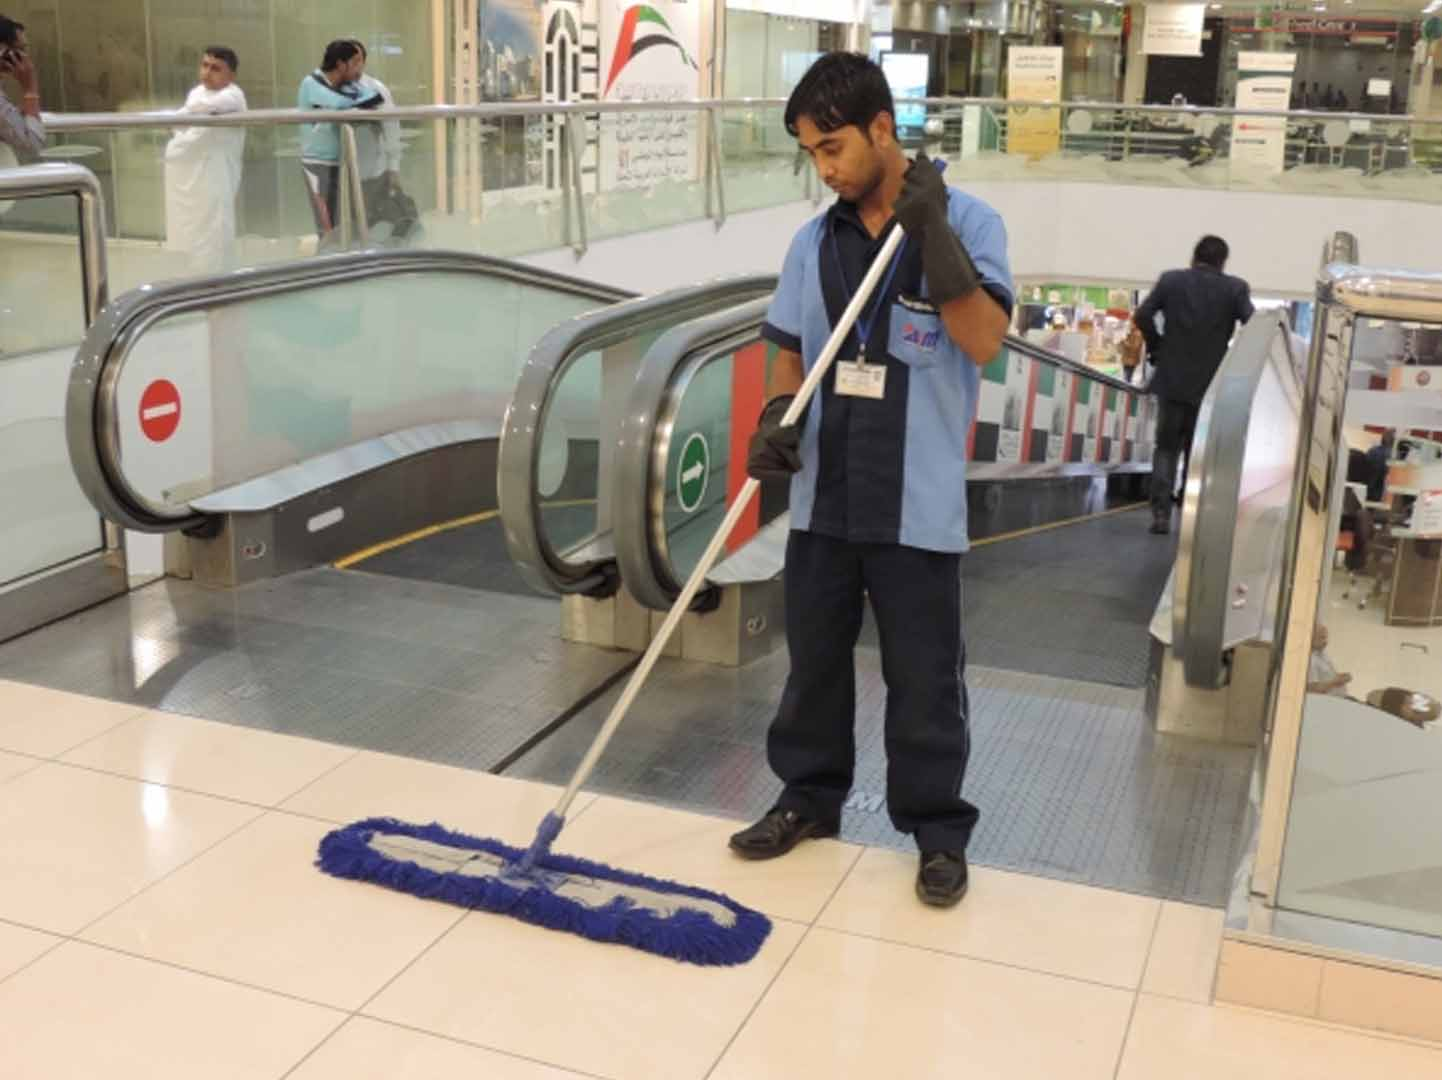 Cleaning Dubai Cleaning Services Companies In Dubai Tbnts